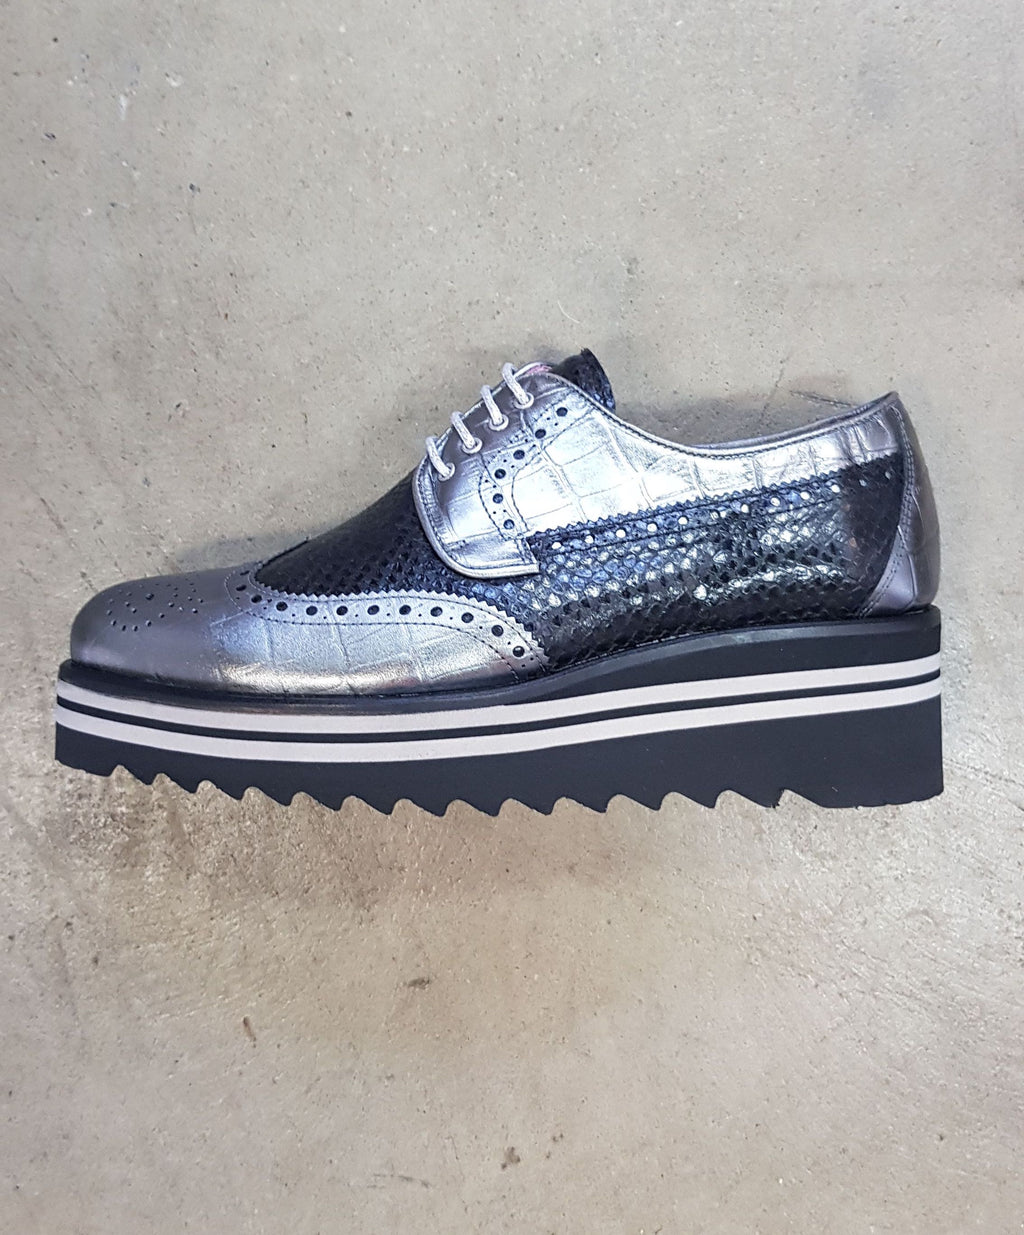 TORRETTI 7945 - BLACK/CHARCOAL/METALLIC BROGUE FLATFORM